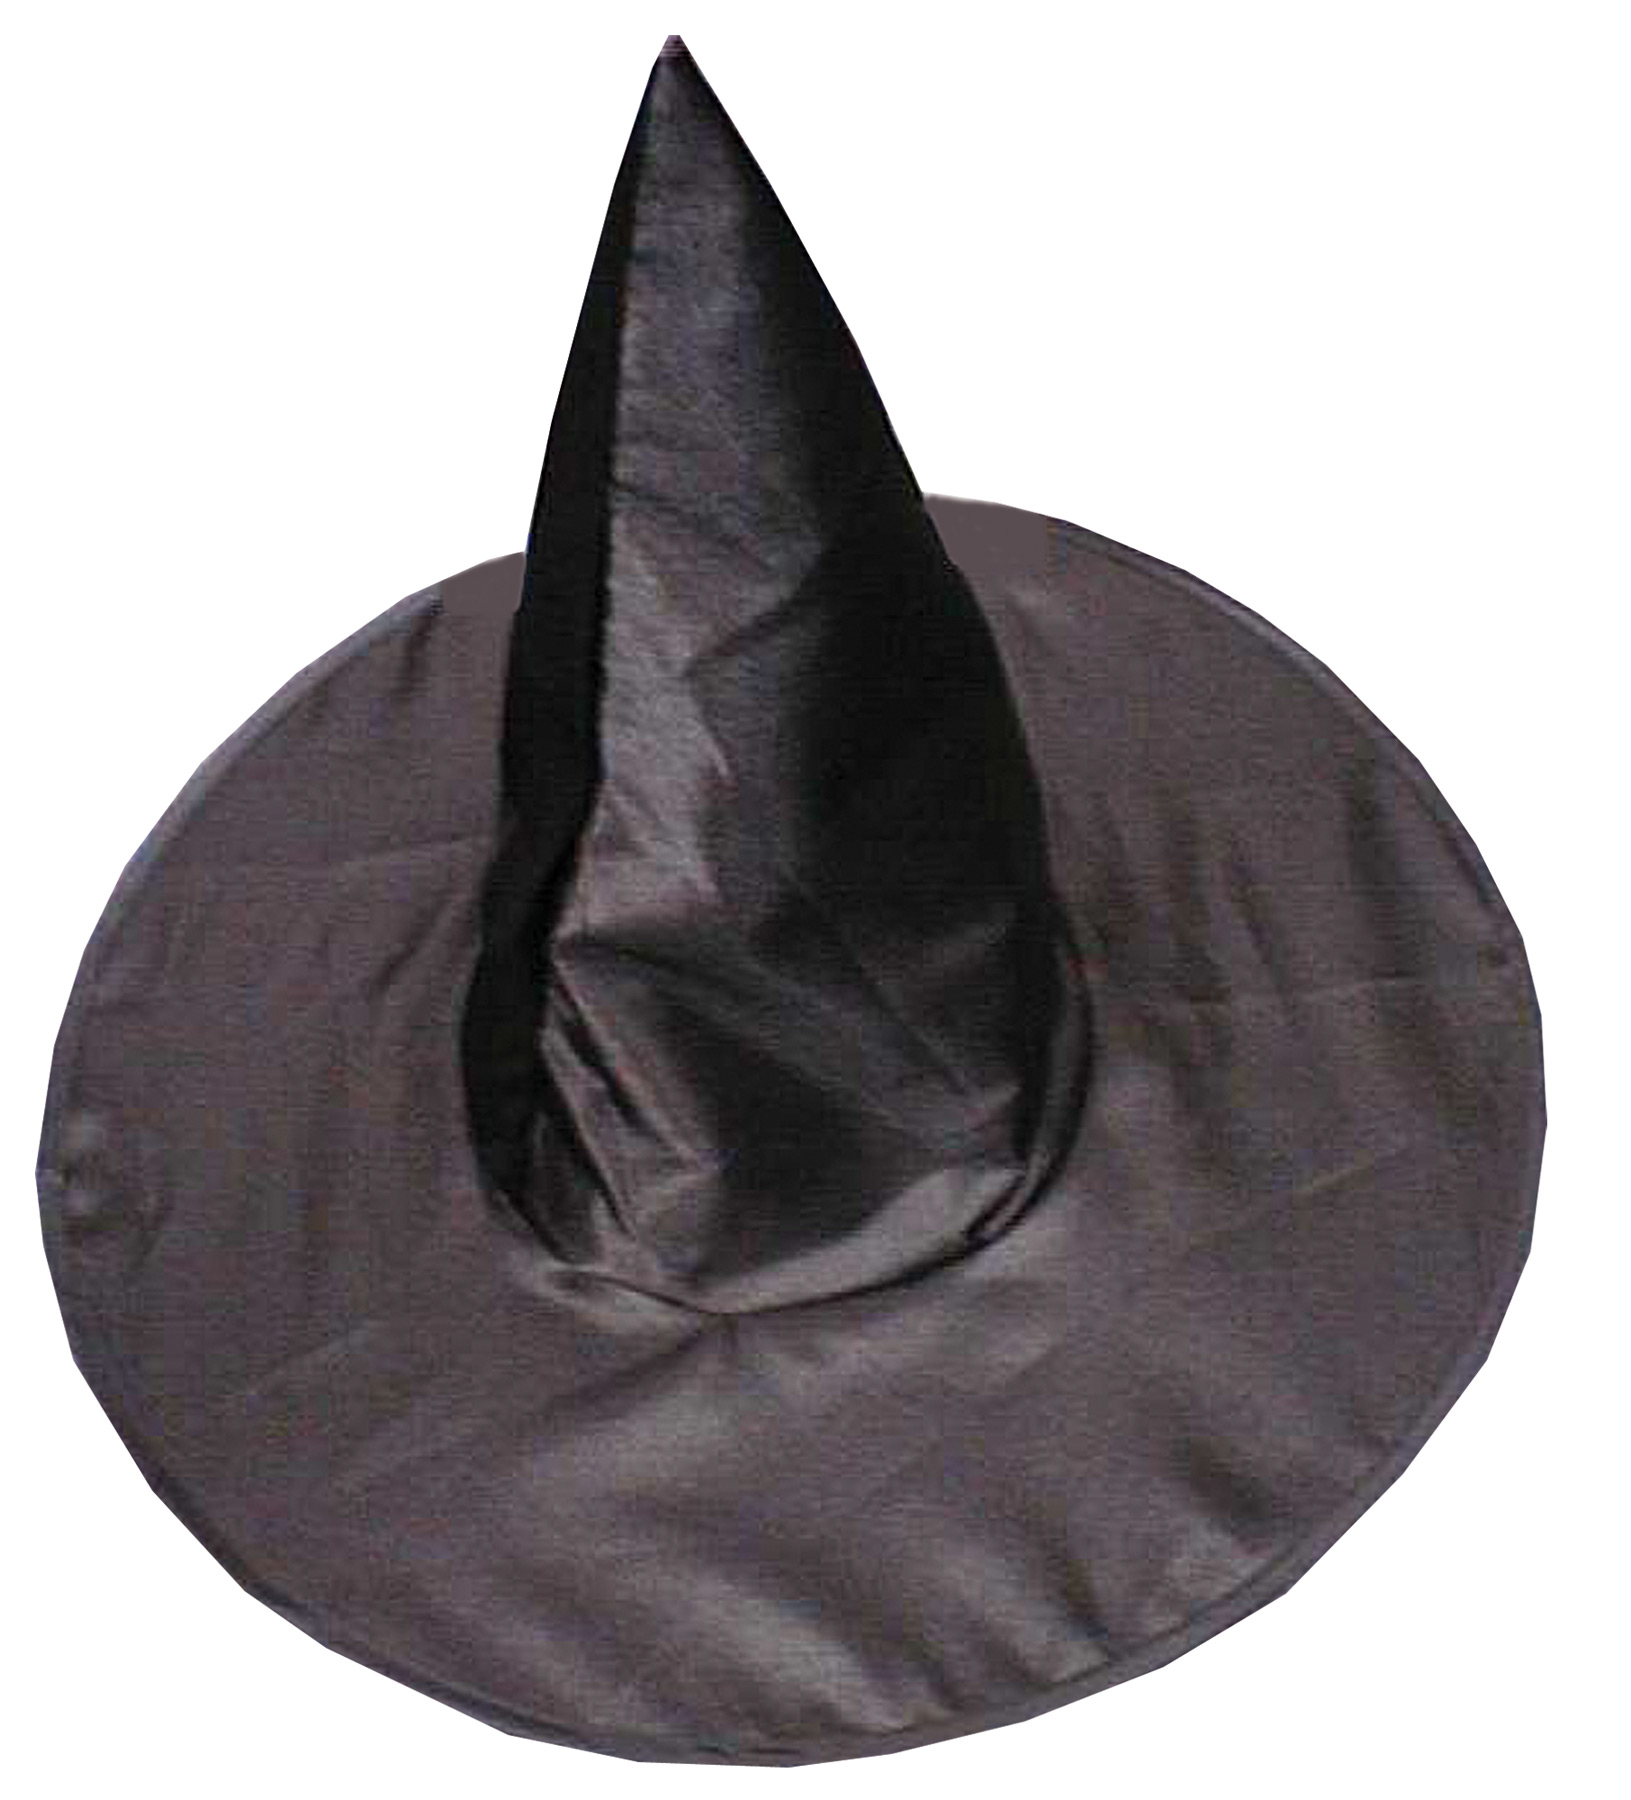 661b56dcaf6 Deluxe Satin Witch Hat Adult Halloween Accessory - Walmart.com